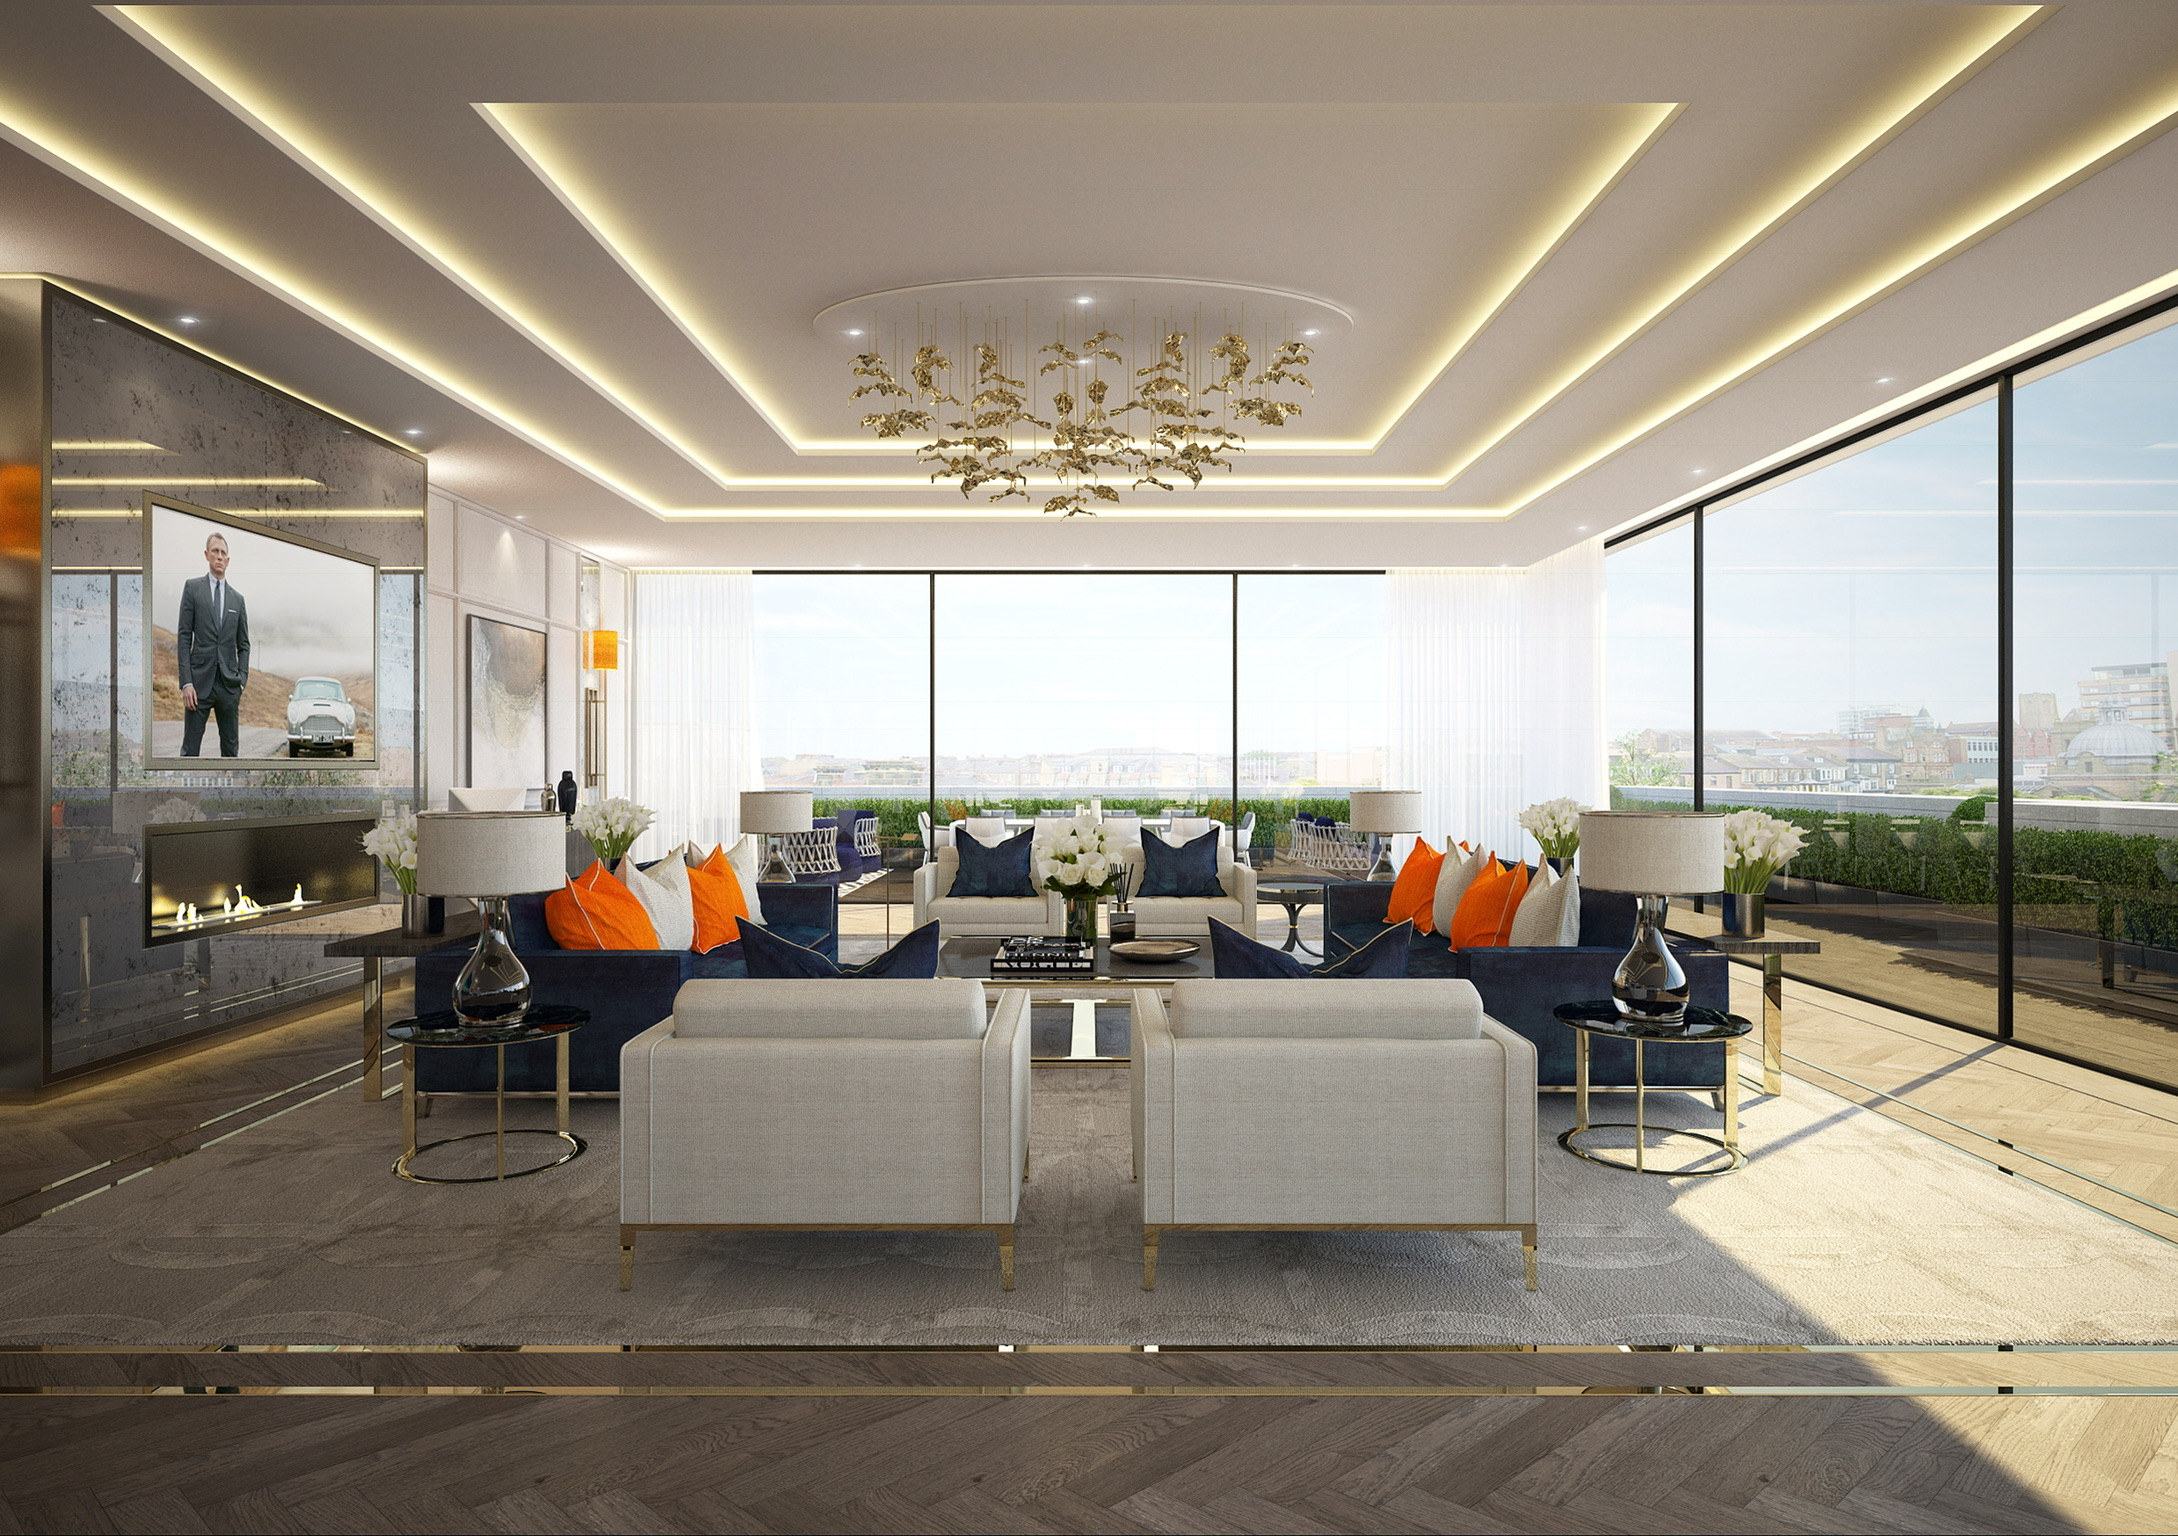 Penthouse reception_2.jpg